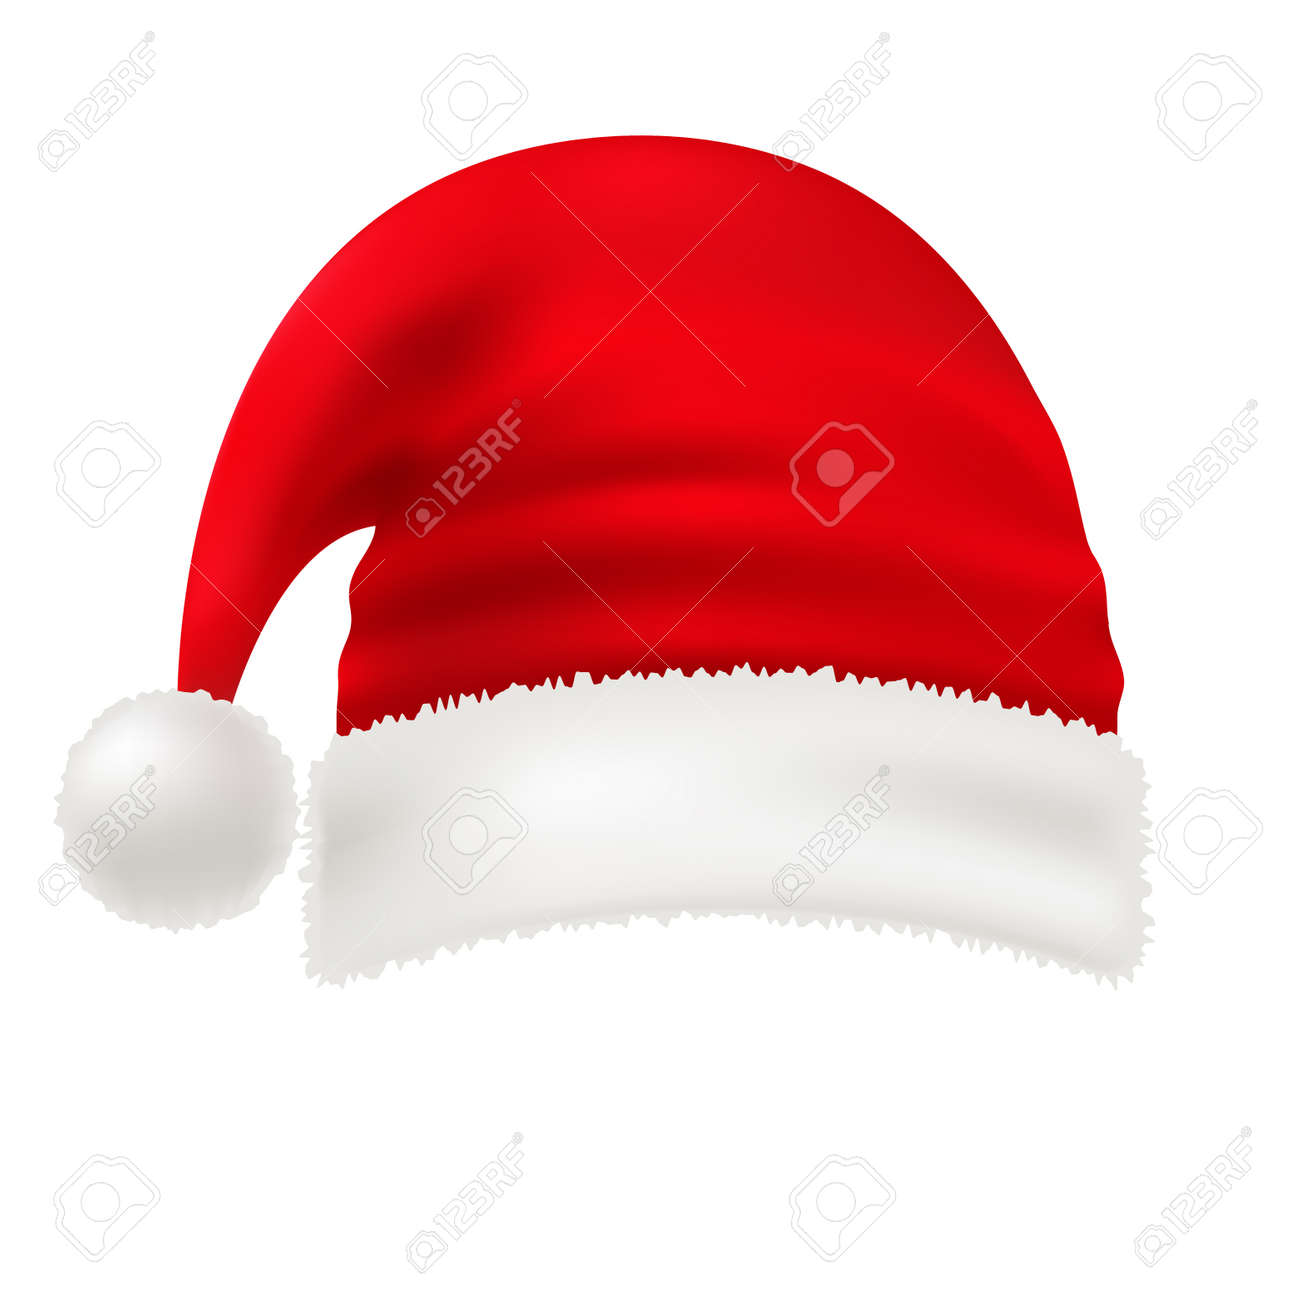 Christmas Hat Transparent.Vector Red Santa Hat Isolated On White Transparent Background